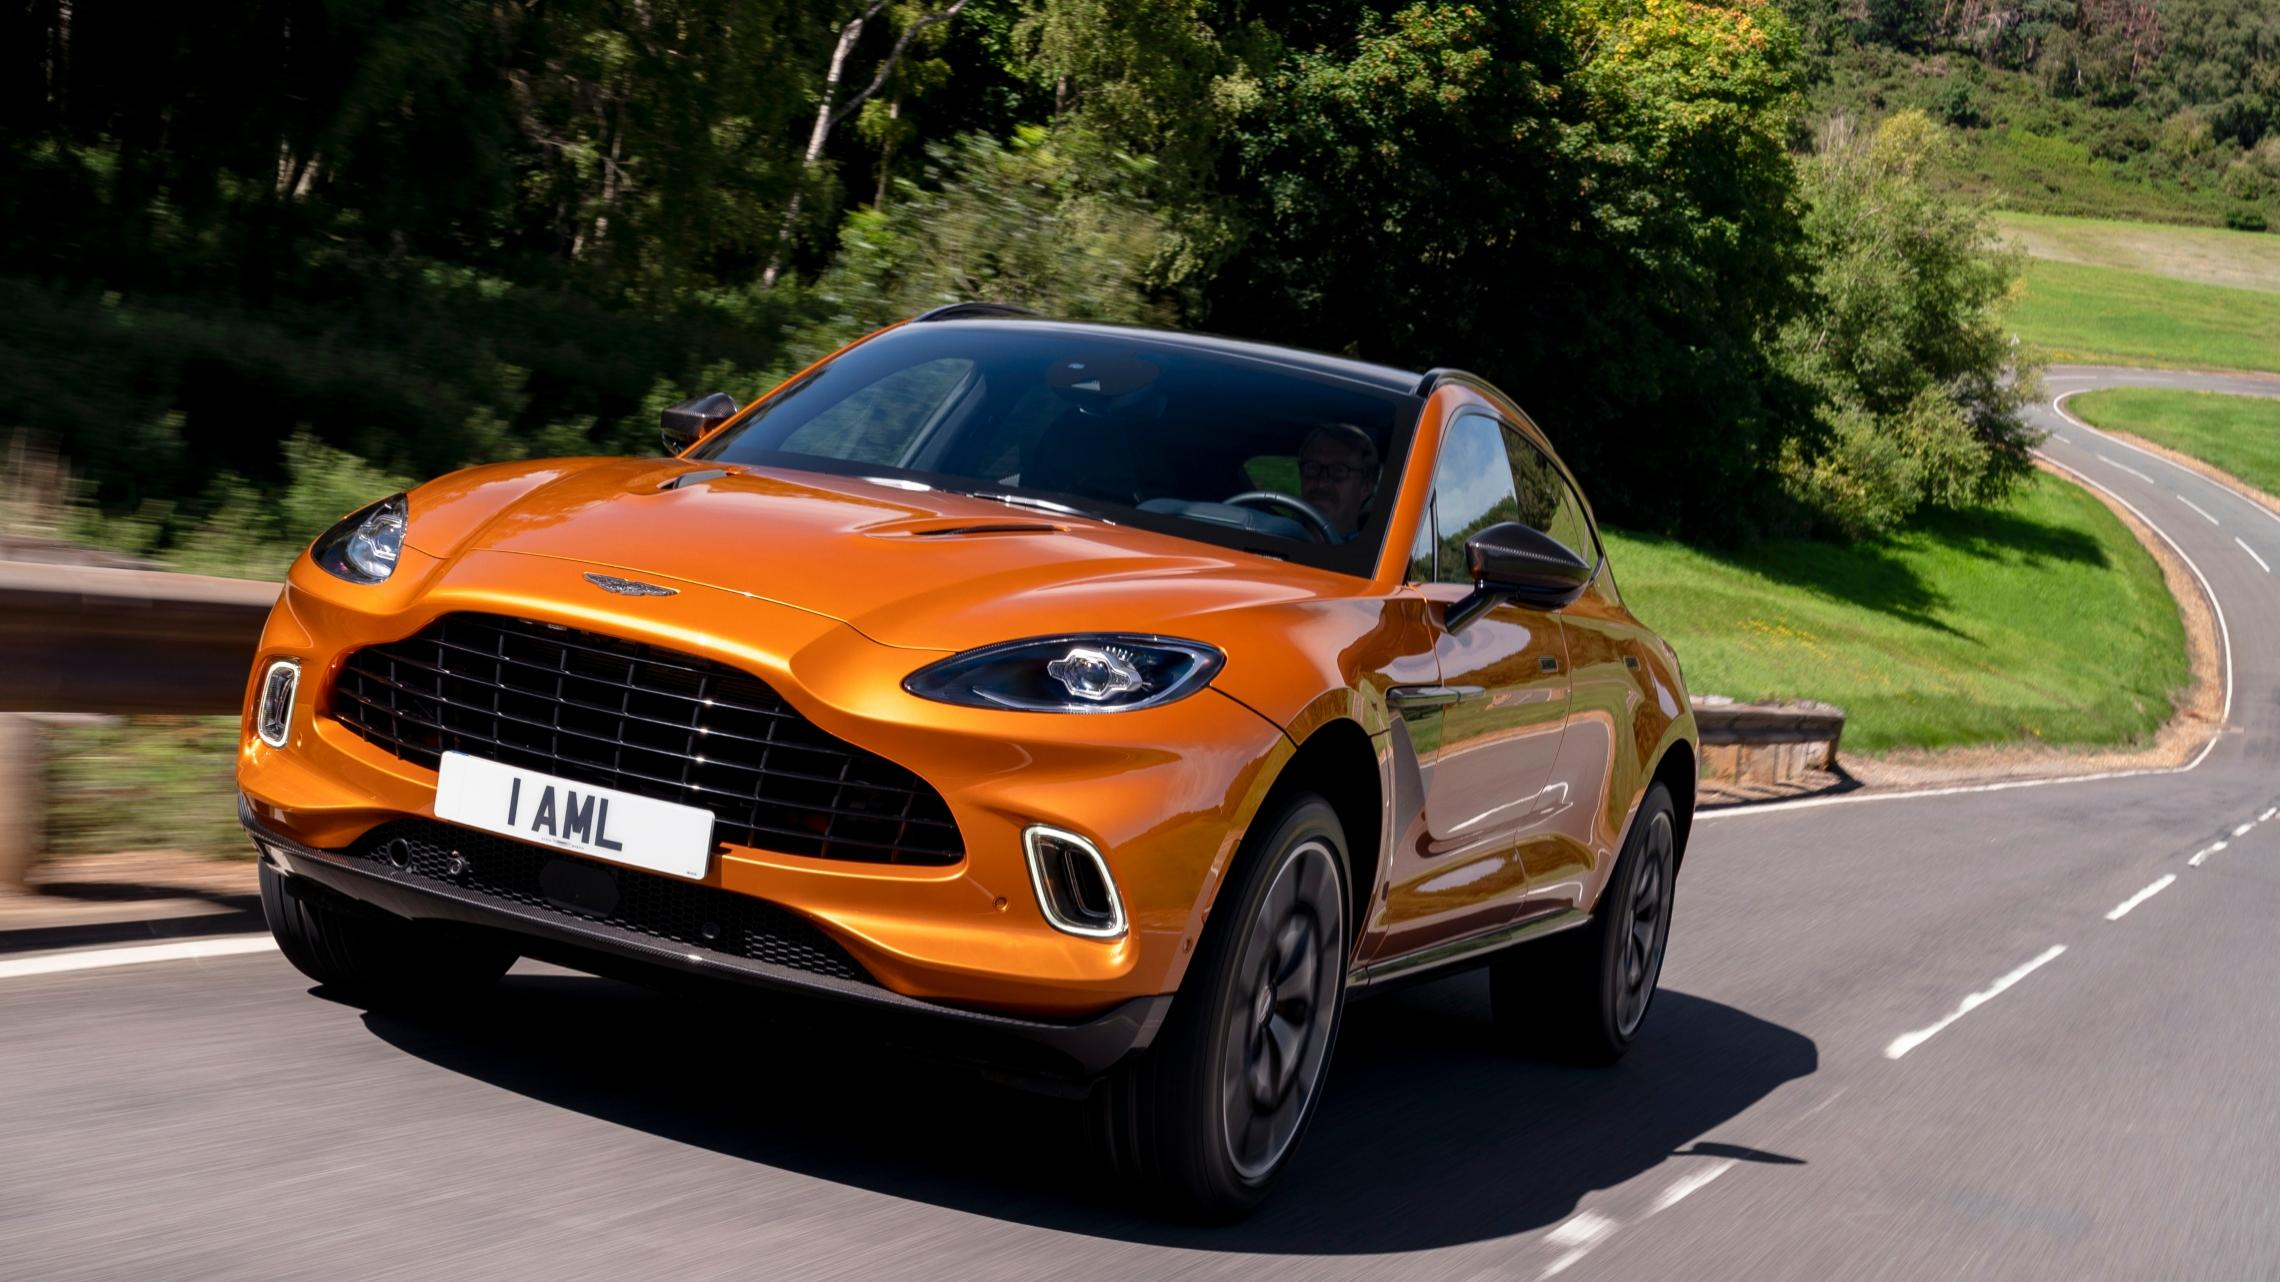 Aston Martin Dbx Review Is The Company S First Ever Suv Worth The Wait Motoring Drive Luxury London